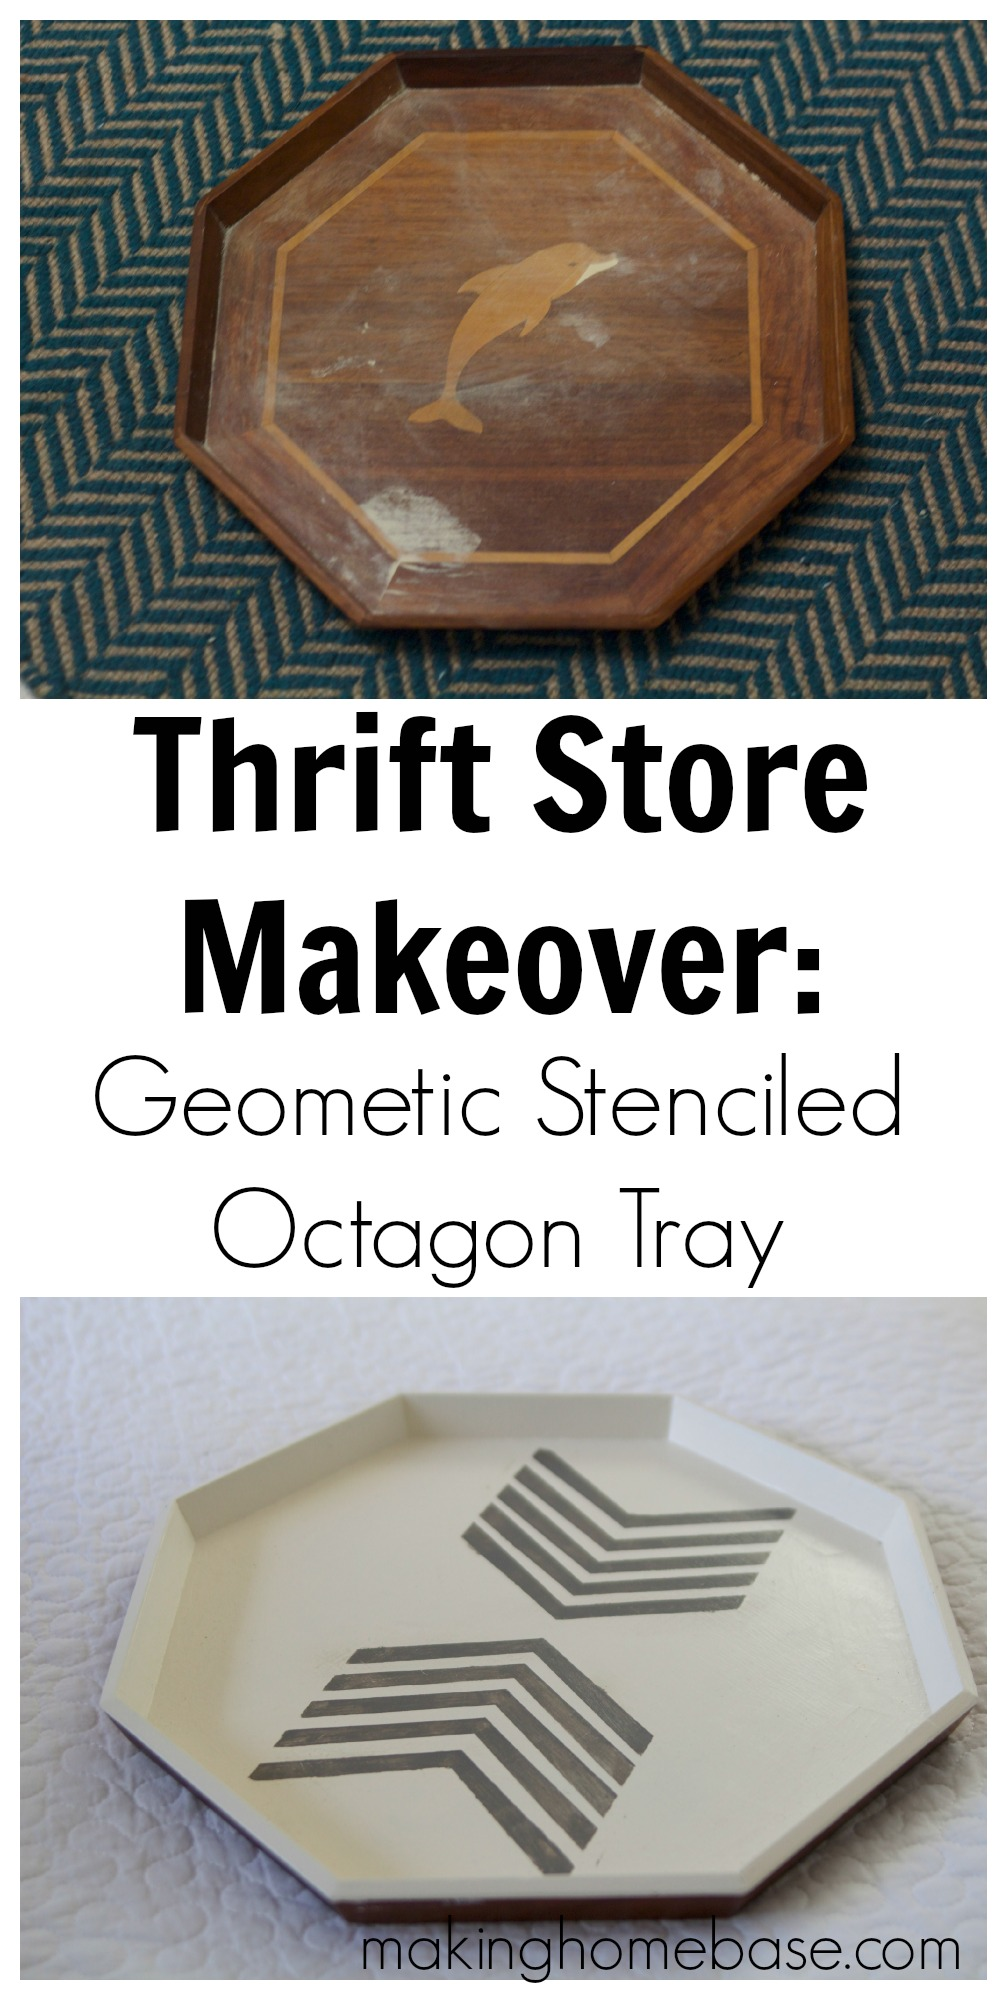 geometric stenciled octagon tray